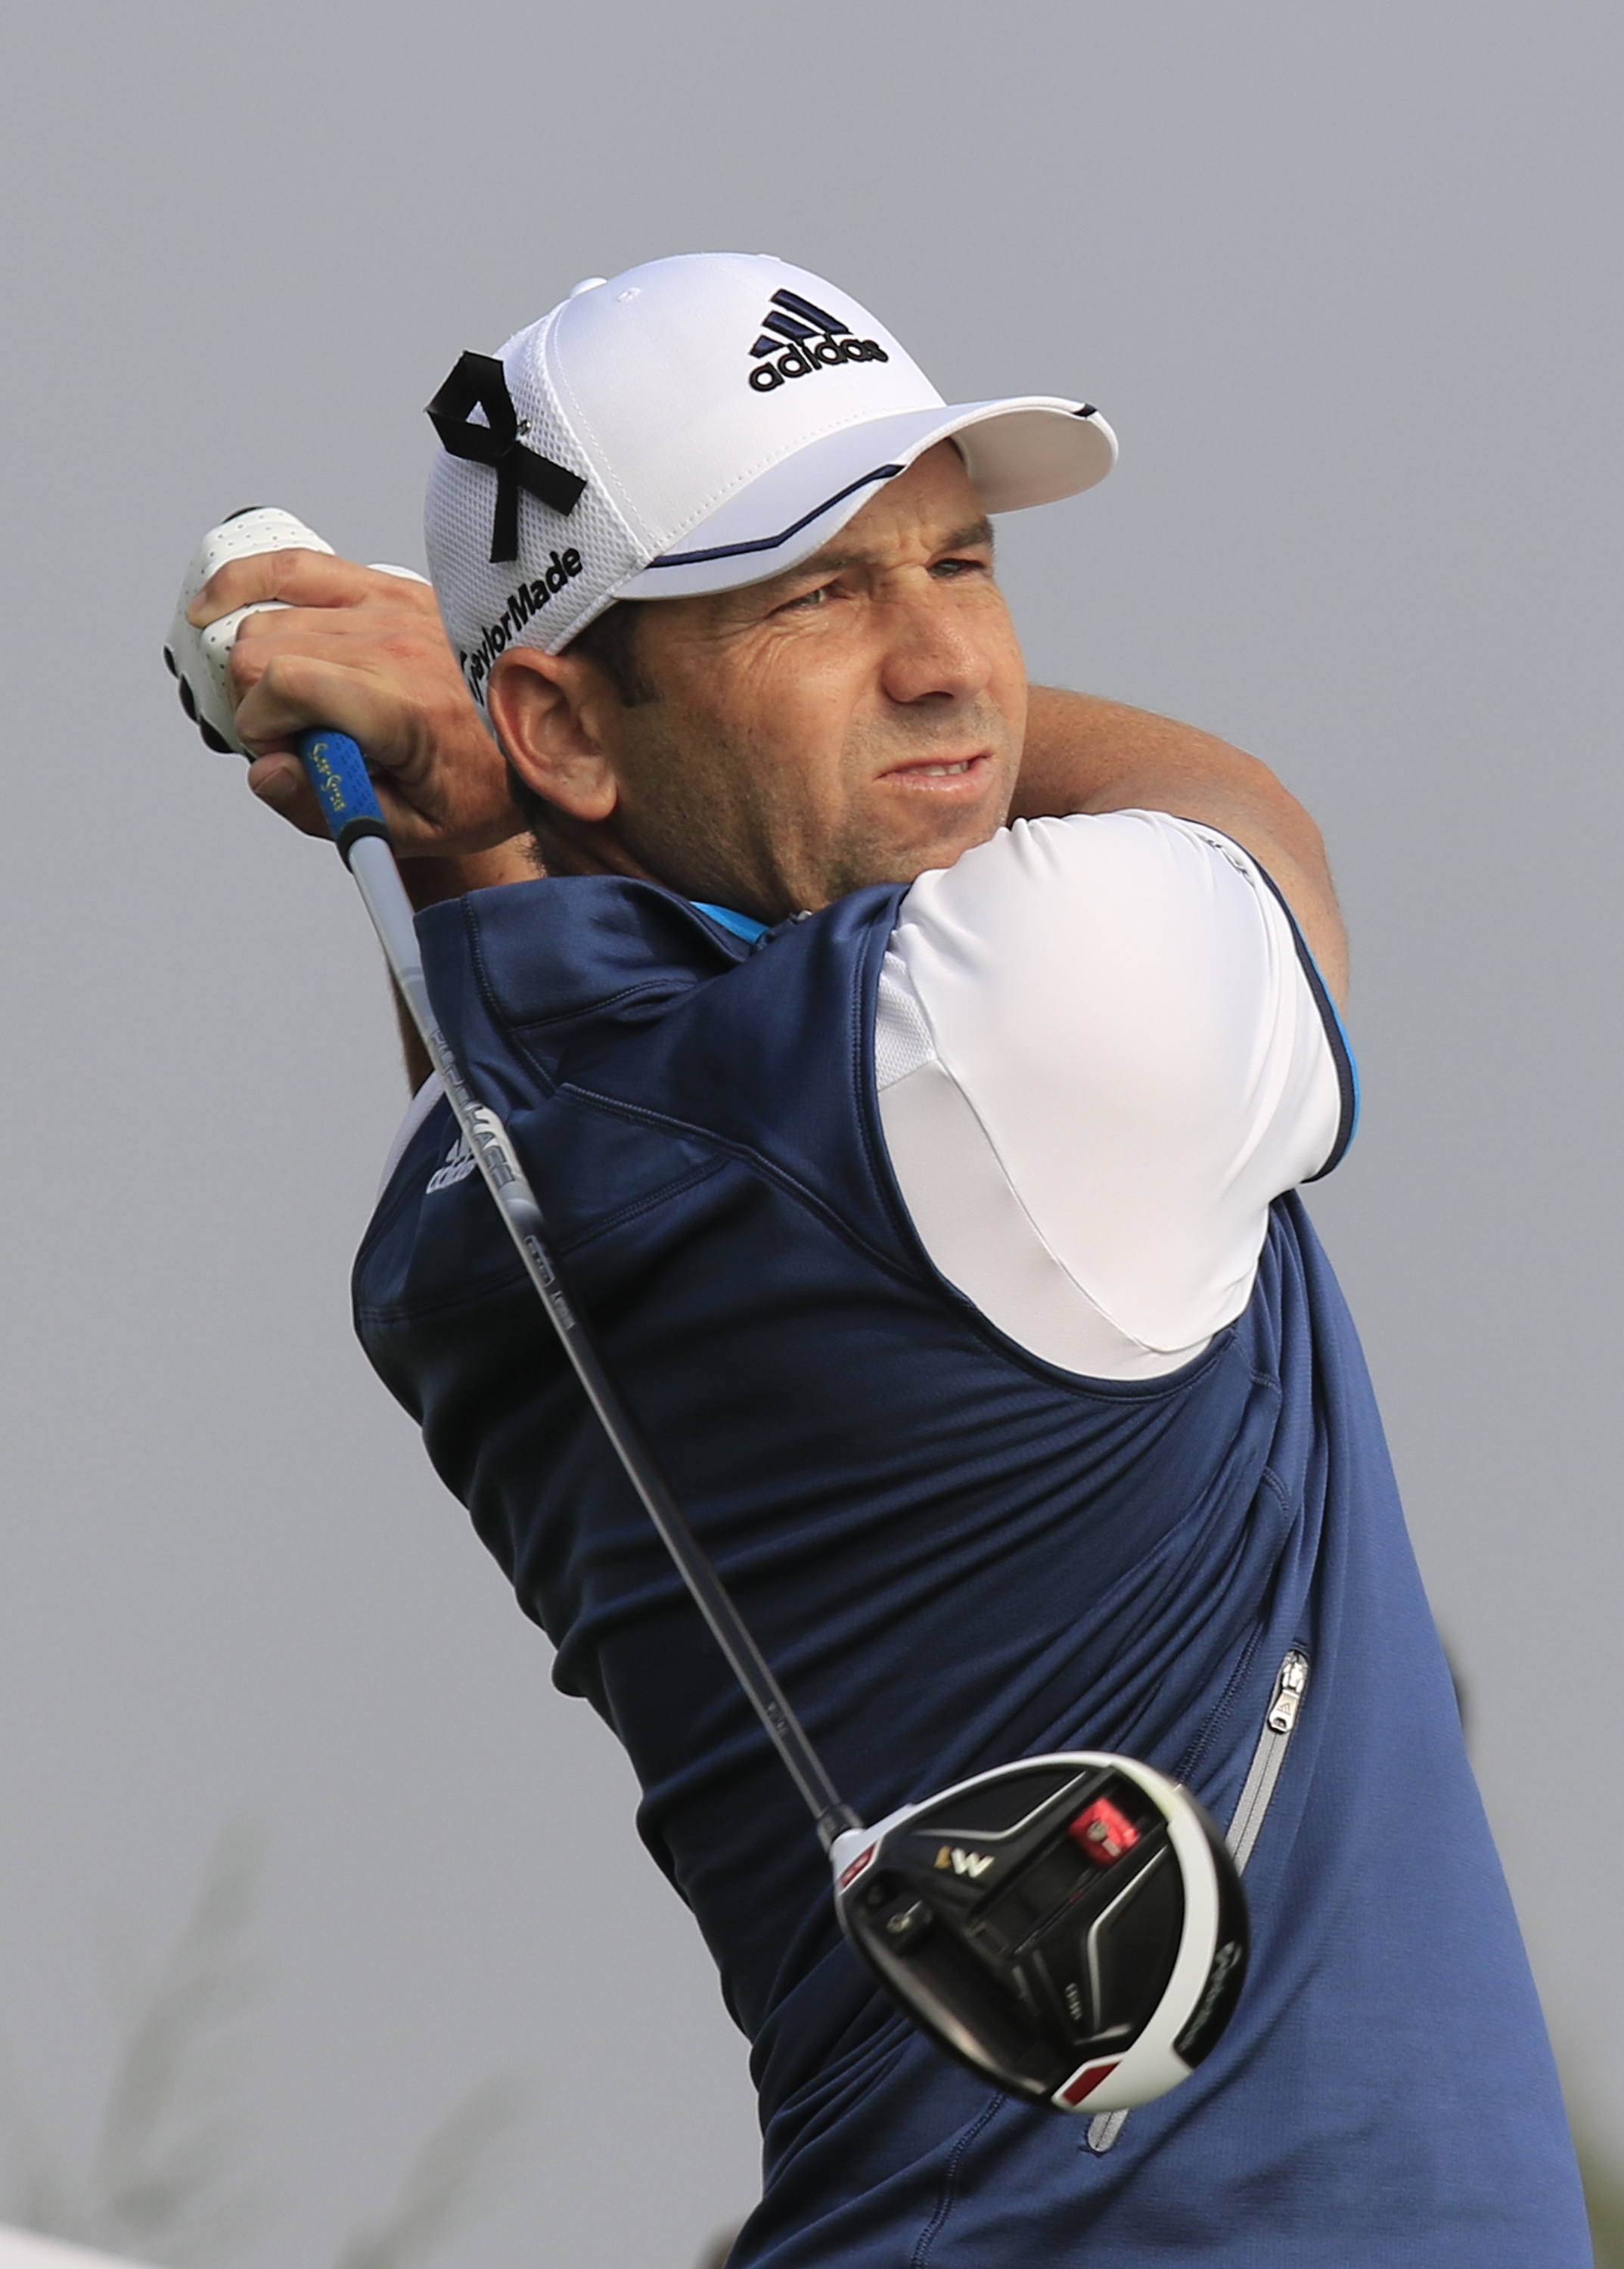 Sergio Garcia of Spain wearing a black ribbon on his hat to mourn for the victims killed in Friday's attacks in Paris, France, tees off on the 7th hole during the third round of the BMW Masters golf tournament at the Lake Malaren Golf Club in Shanghai,